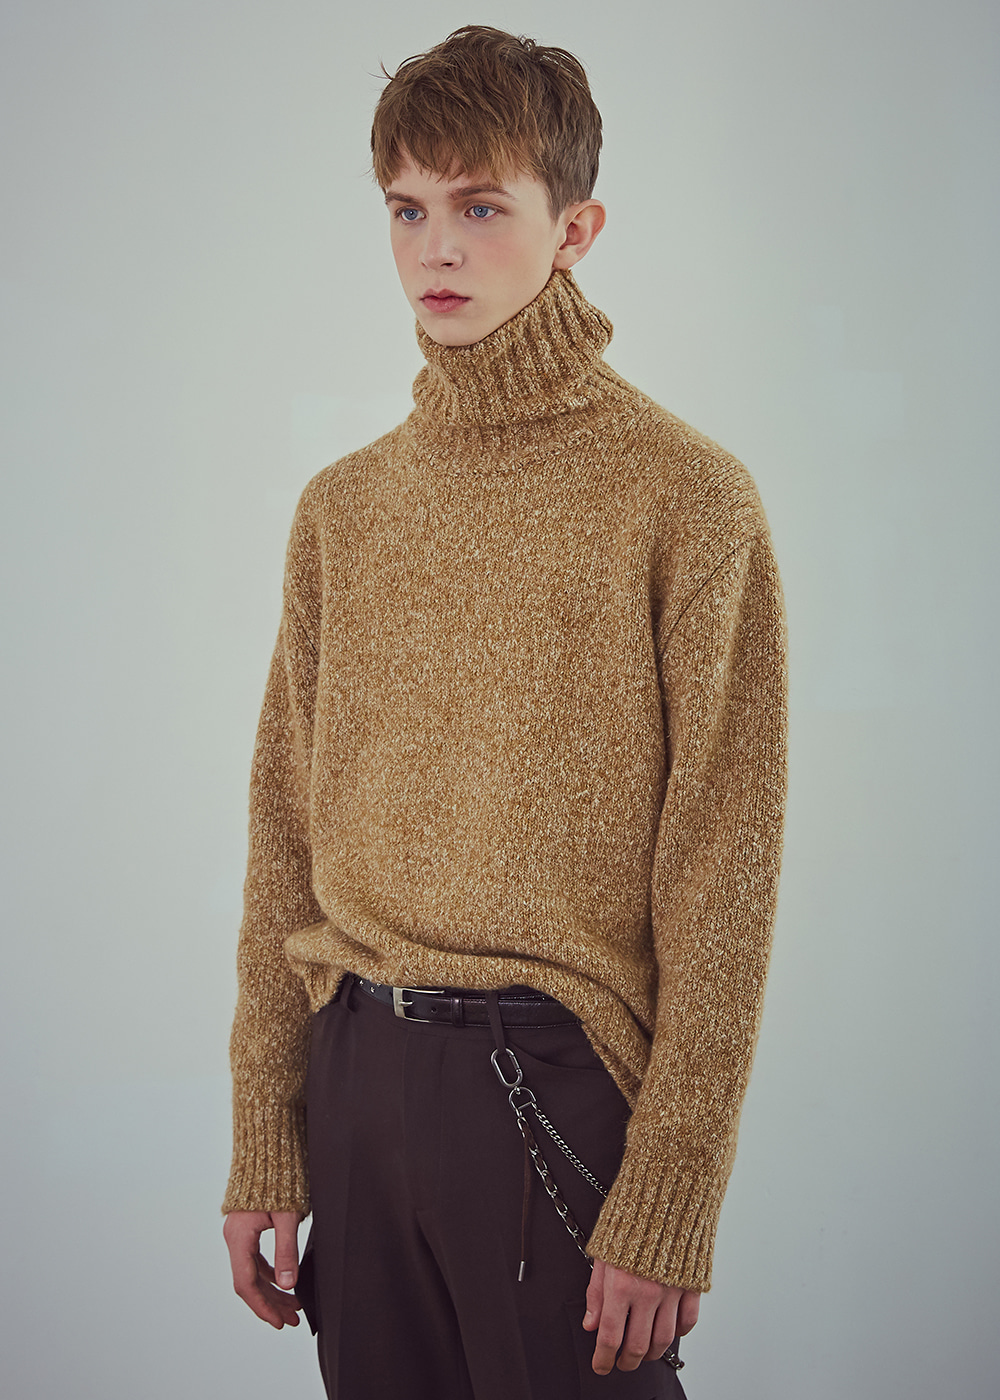 Blank Wool-Blend Roll-neck Sweater - Melange Camel